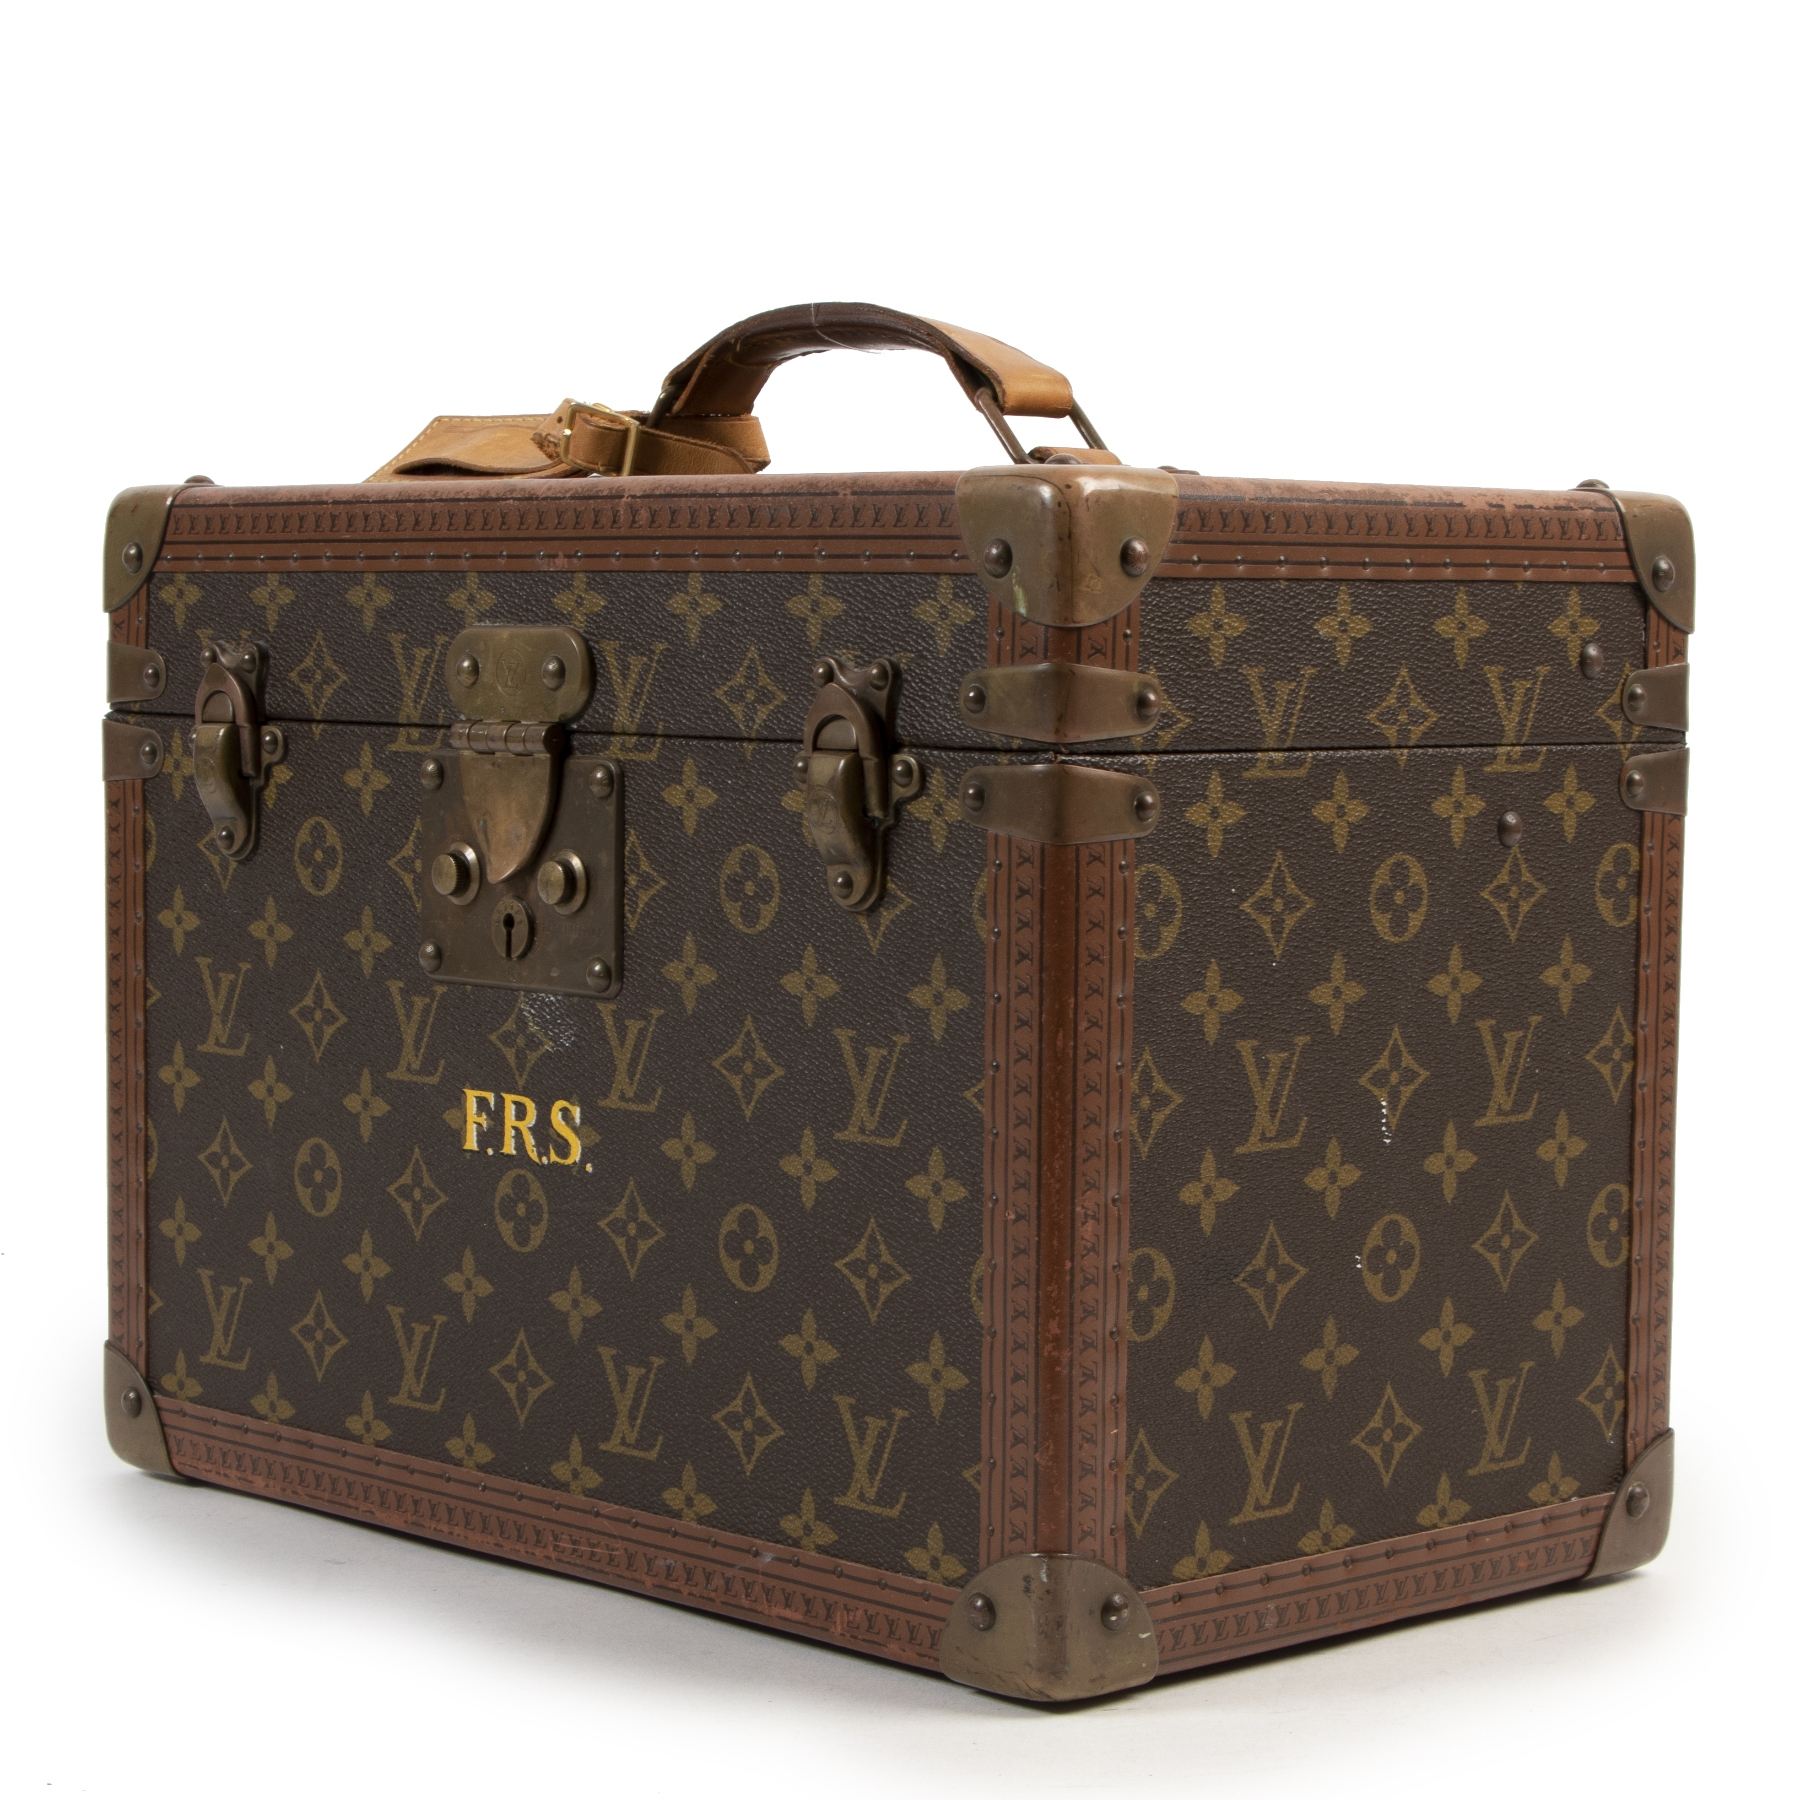 Buy preloved Louis Vuitton beauty cases at LabelLOV Antwerp.